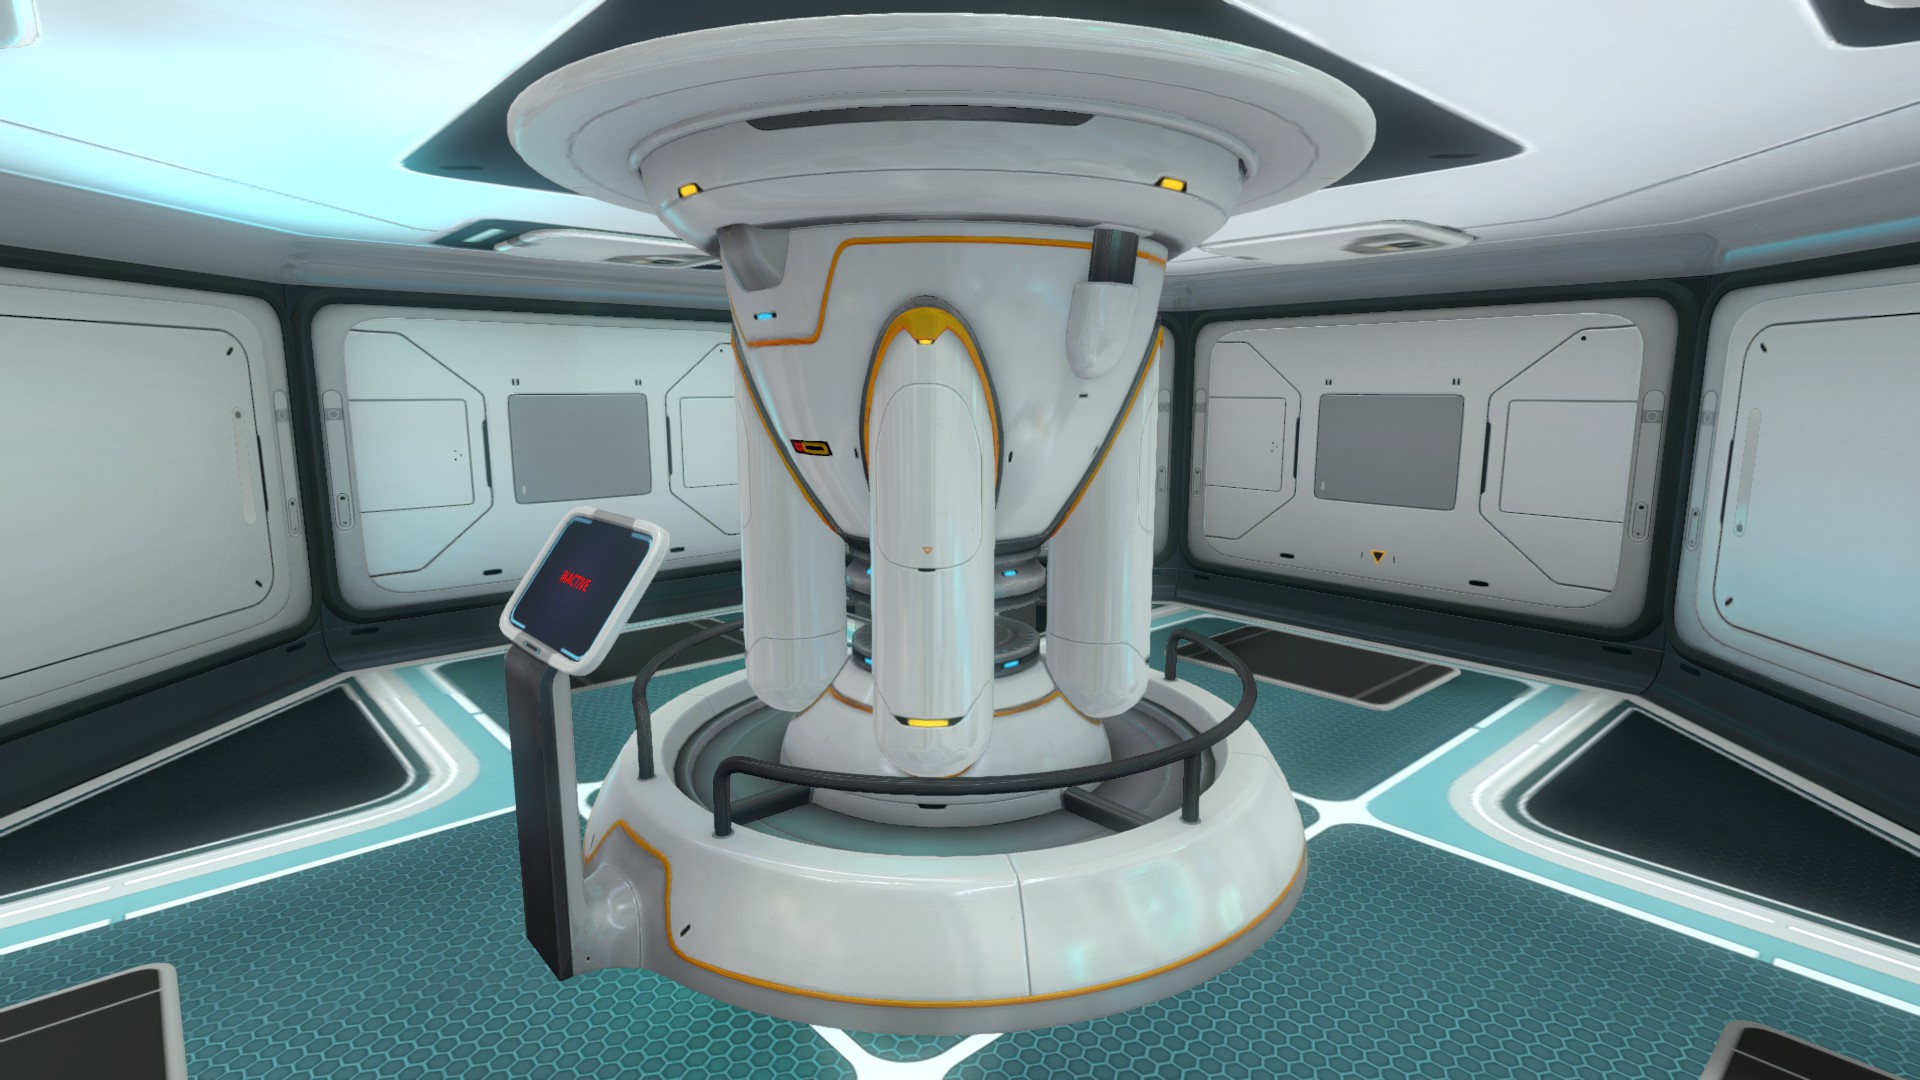 Nuclear reactor subnautica wiki fandom powered by wikia malvernweather Image collections